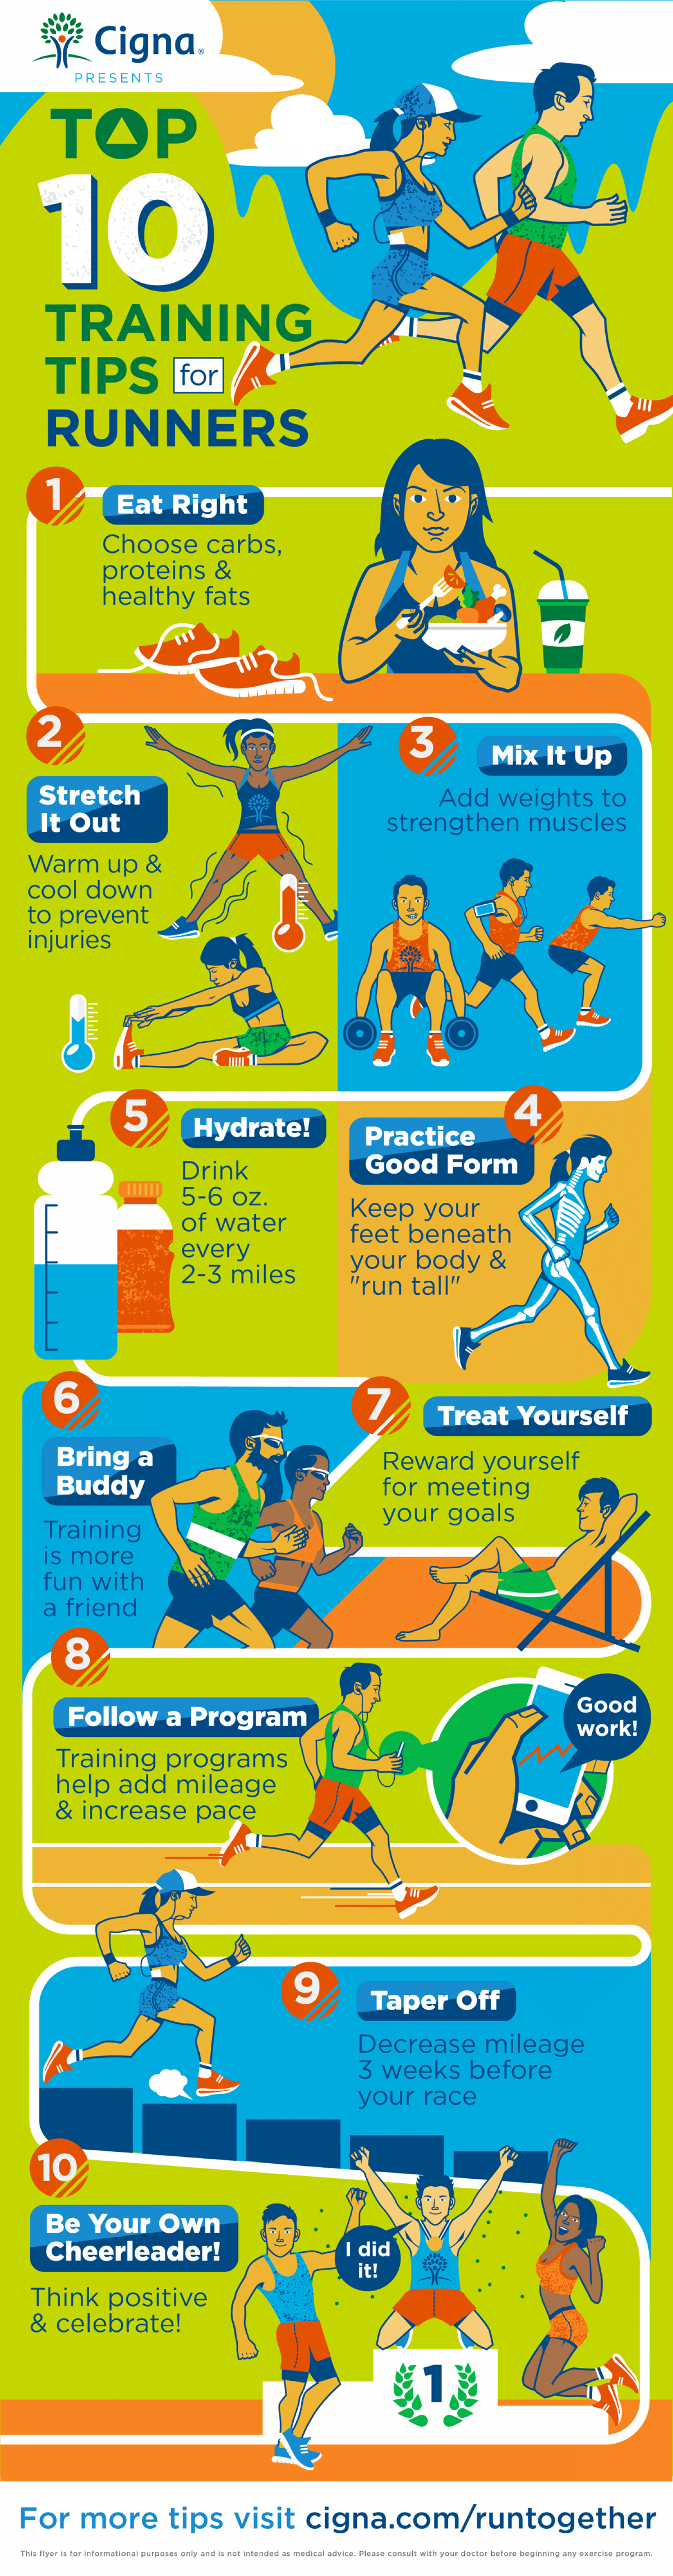 Top 10 Training Tips Infographic Infographic